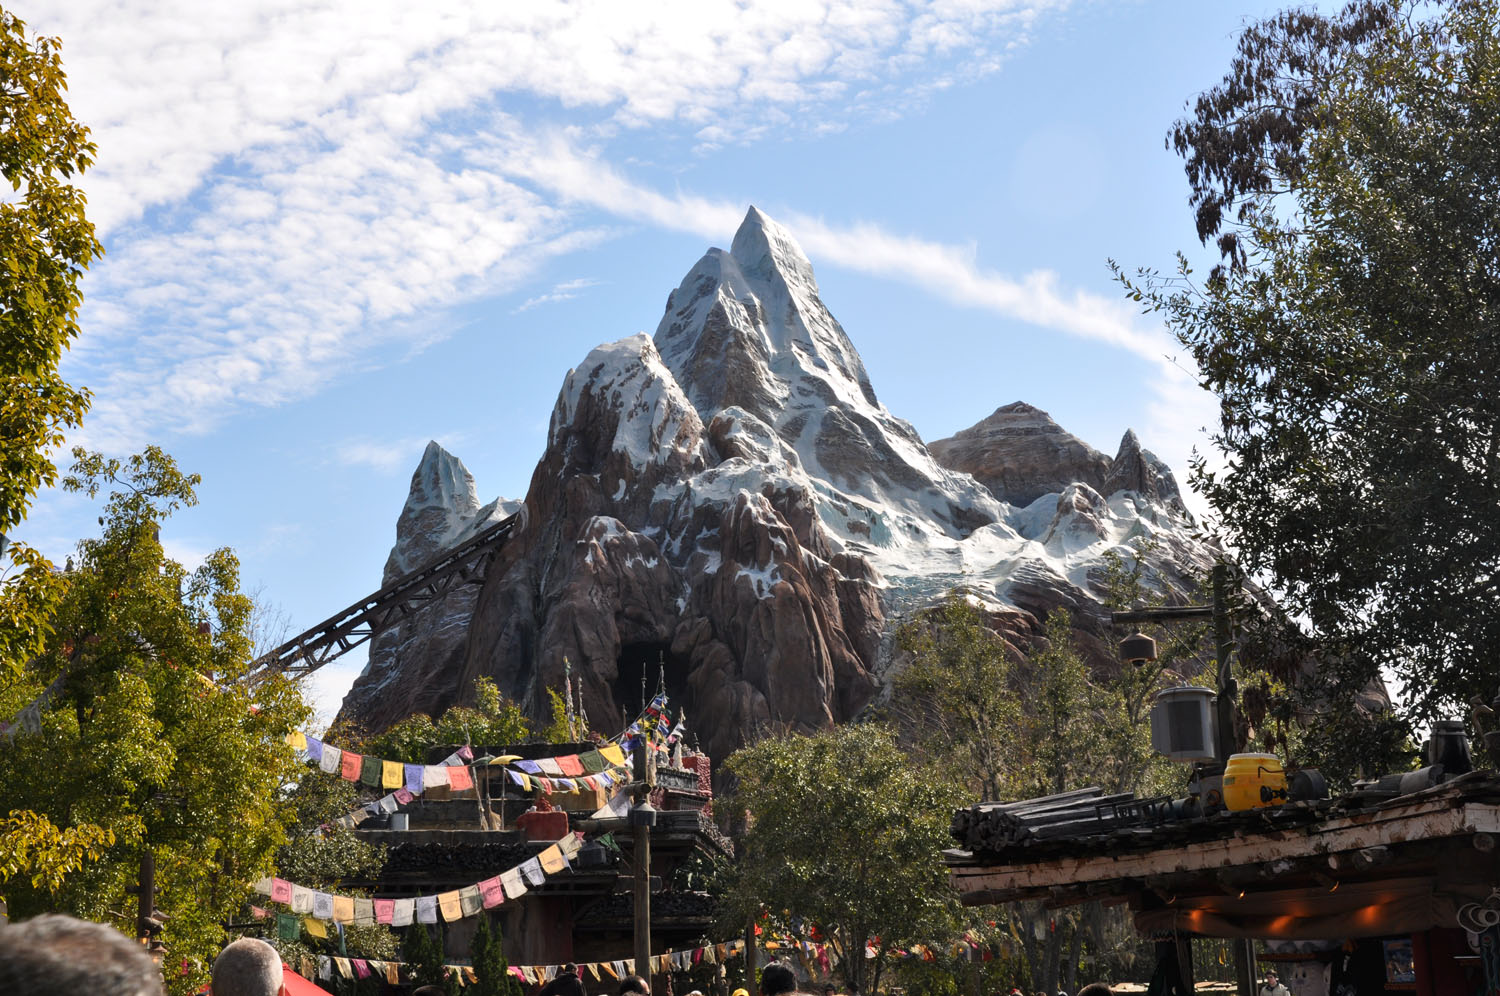 Expedition: Everest